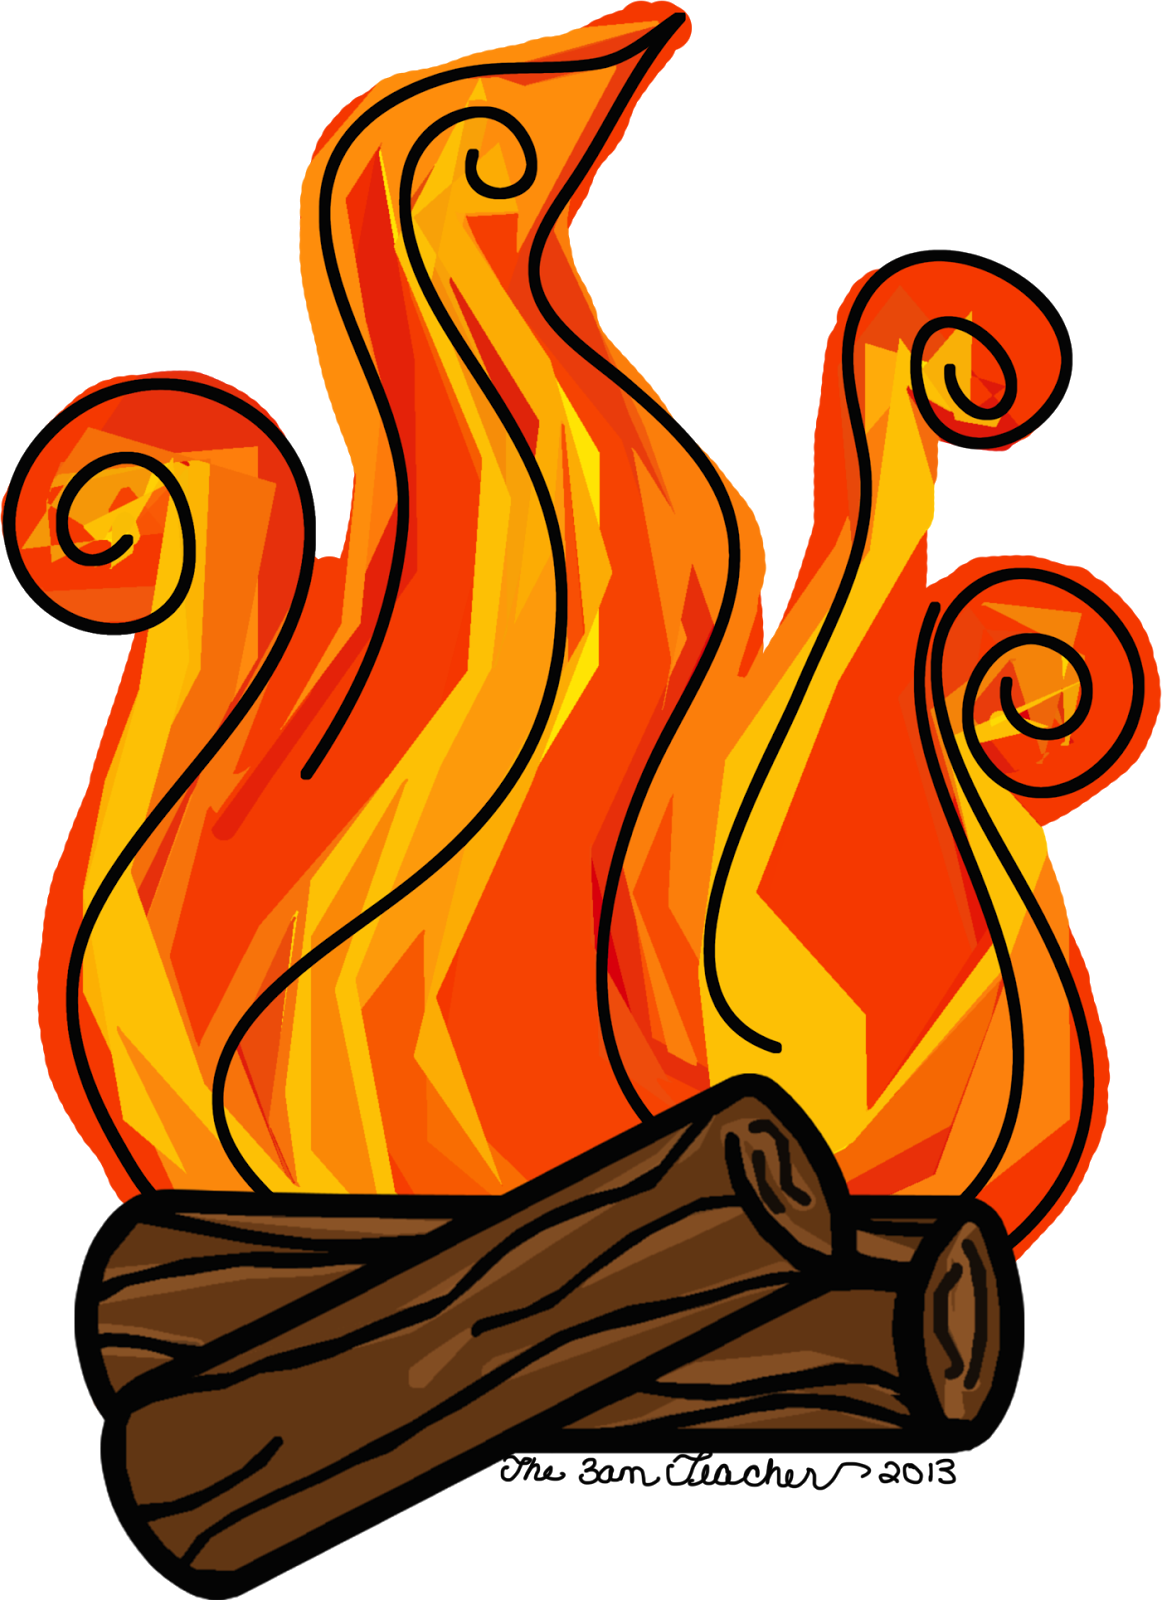 Clipart fire stove. The am teacher best